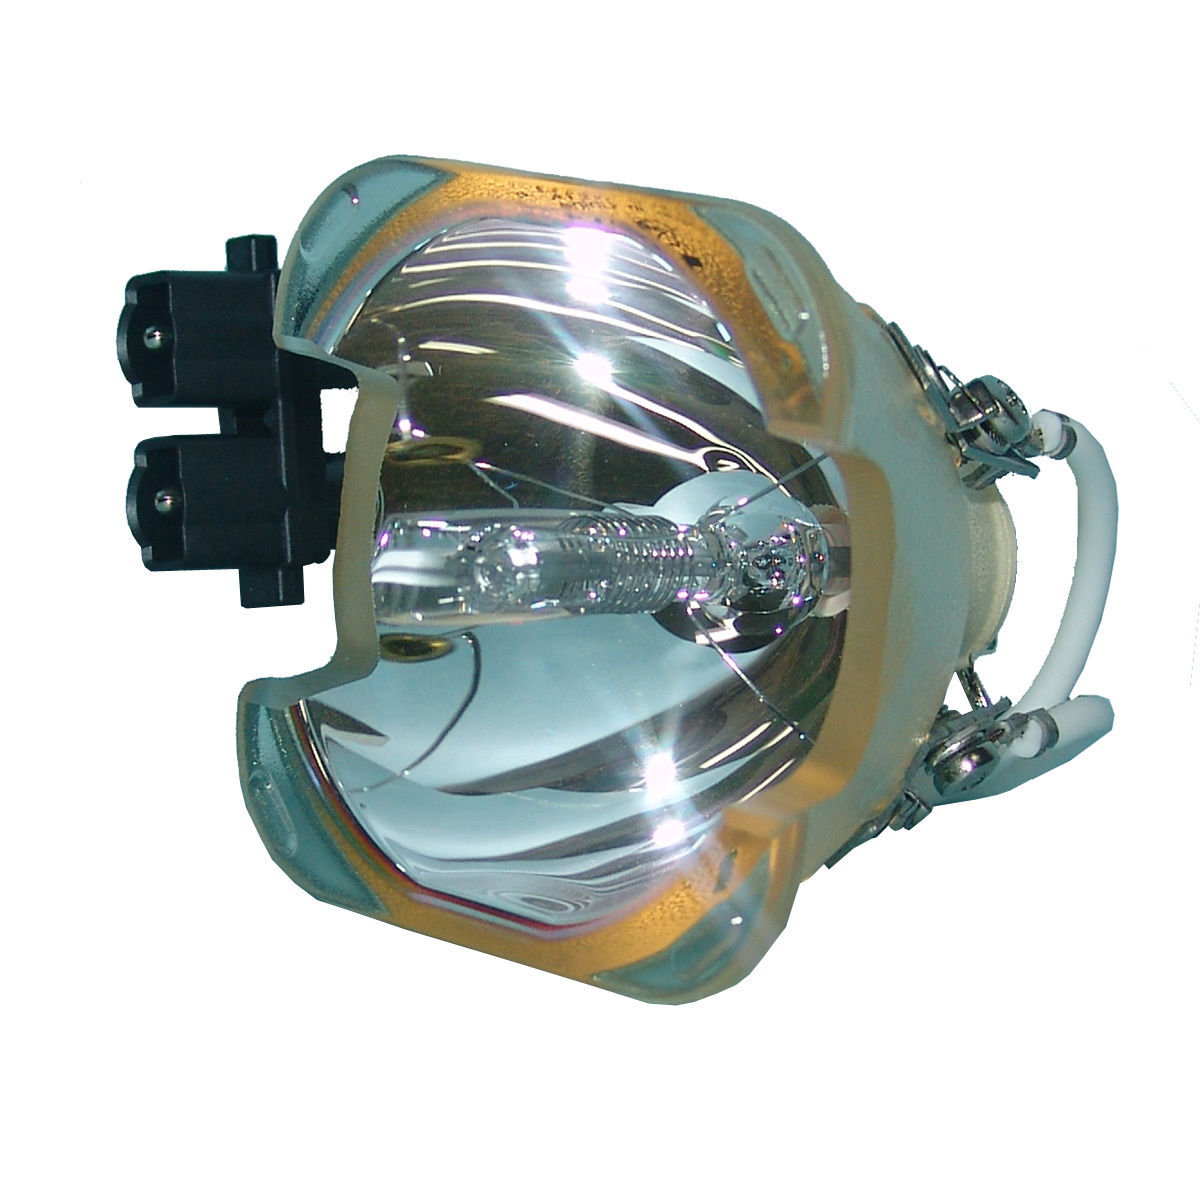 Compatible Bare Bulb BL-FU250B BLFU250B SP.86501.001 for Optoma EP756 / EP757 / H65A Projector Lamp Bulb without housing compatible bare bulb bl fu250d blfu250d sp 81d01 001 for optoma theme s h57 projector bulb lamp without housing